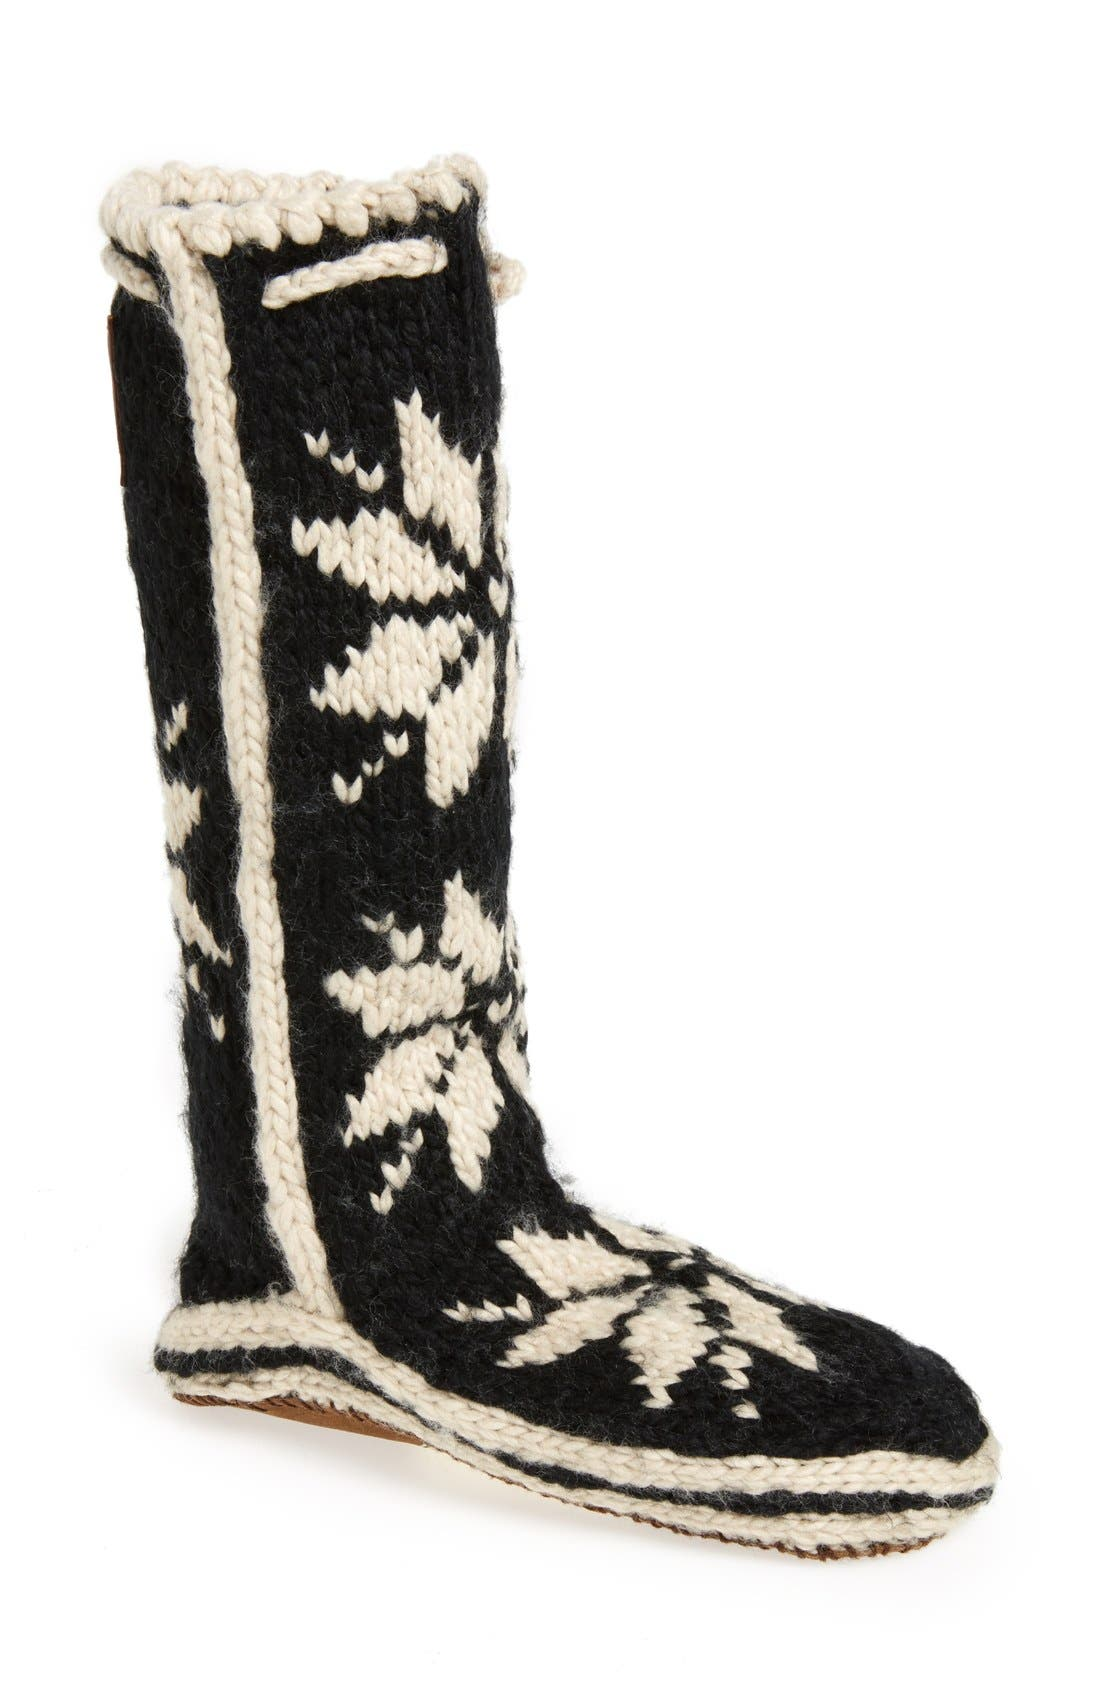 'Chalet' Socks,                             Main thumbnail 7, color,